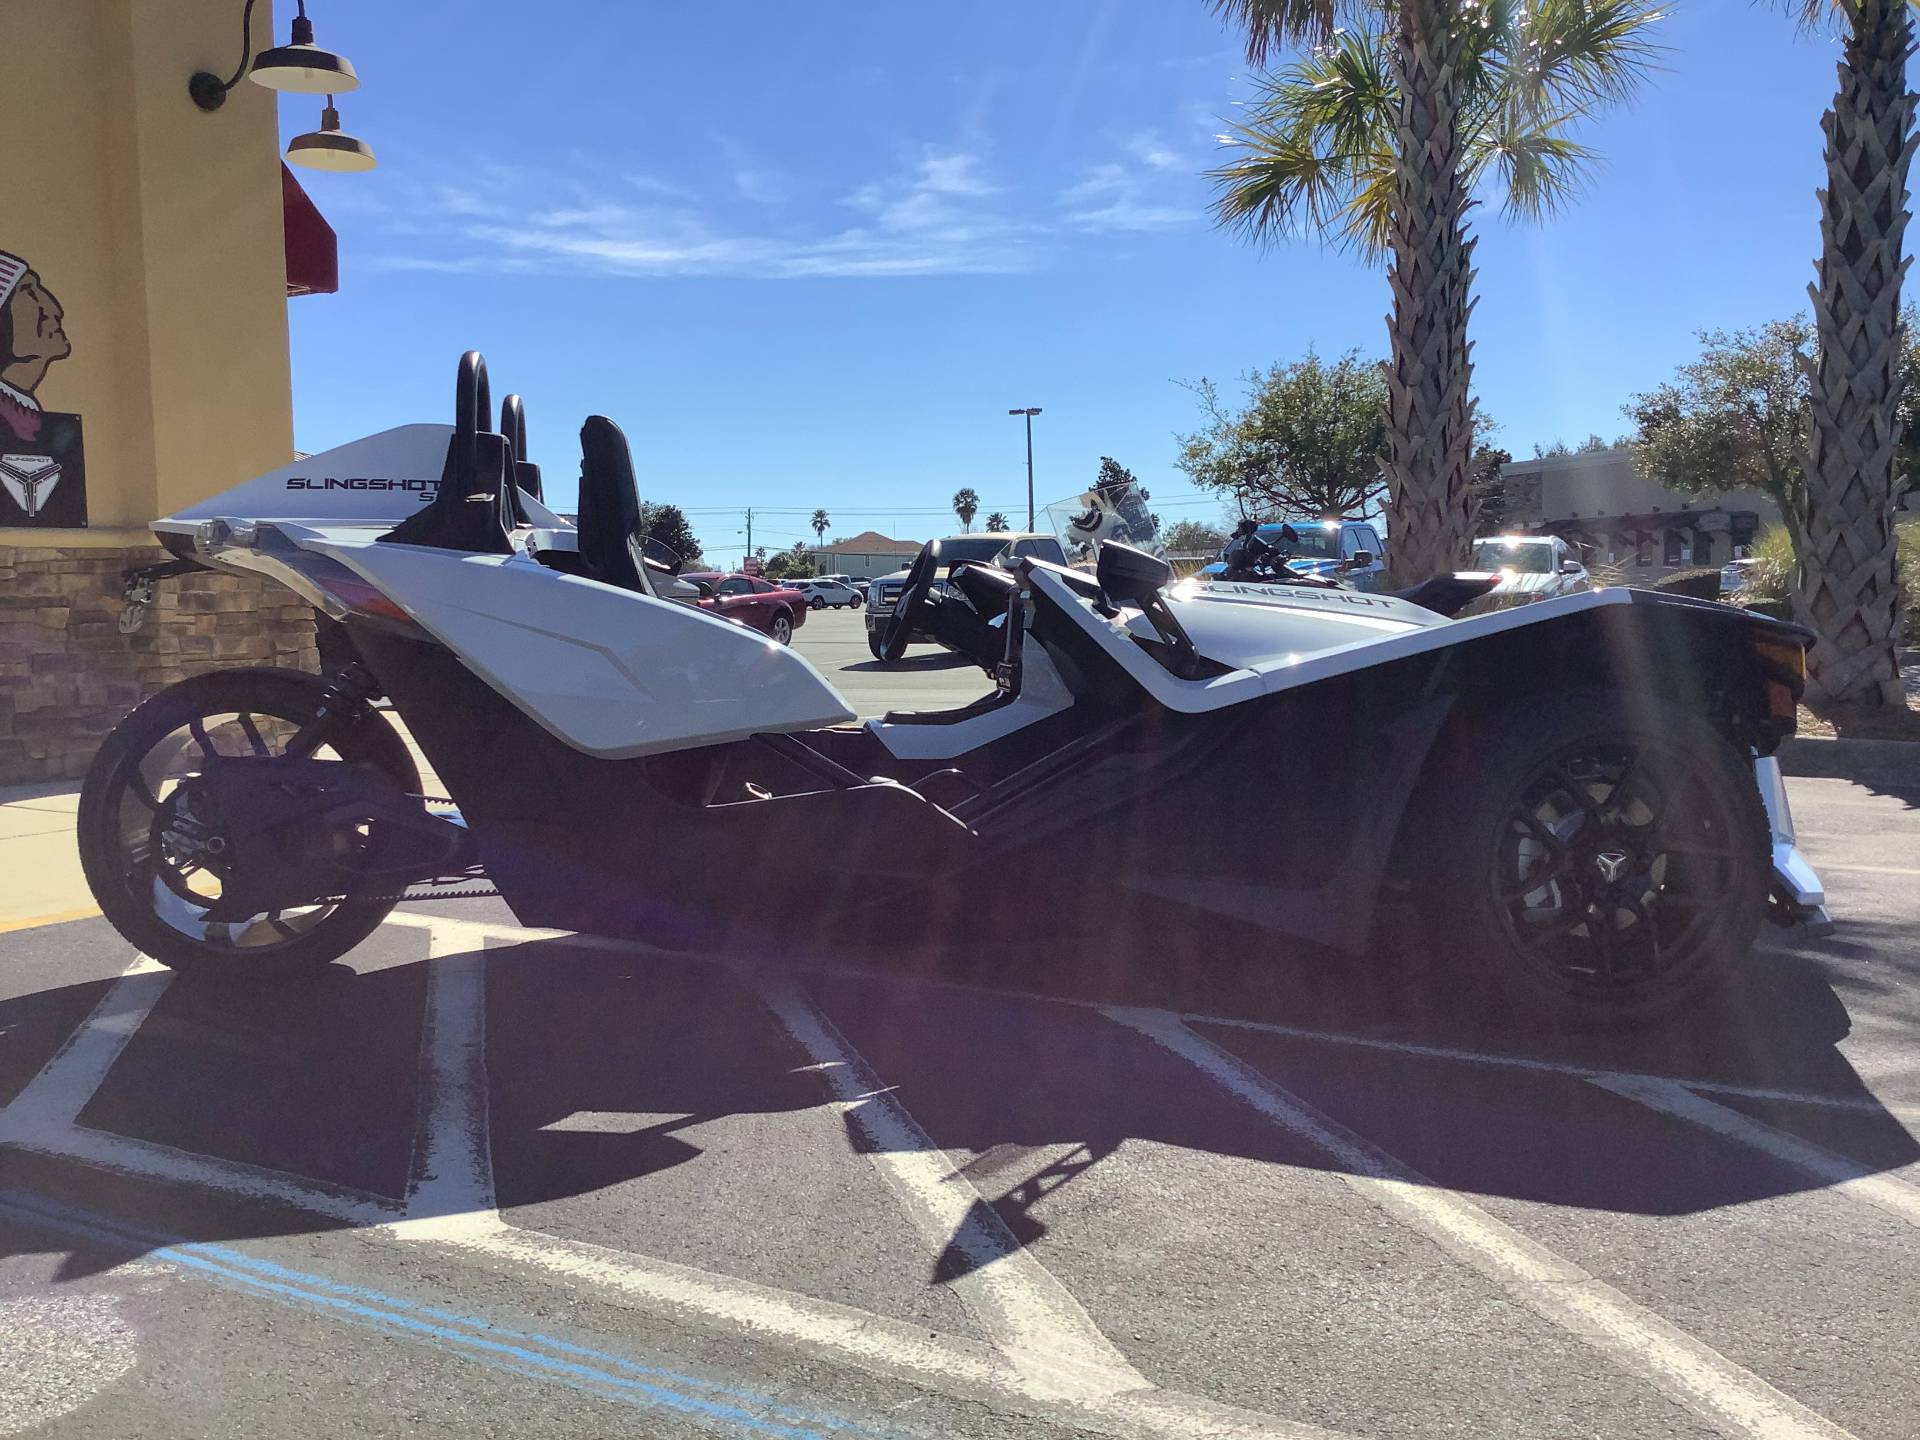 2021 Polaris SLINGSHOT S TECH PACKAGE 1 in Panama City Beach, Florida - Photo 8